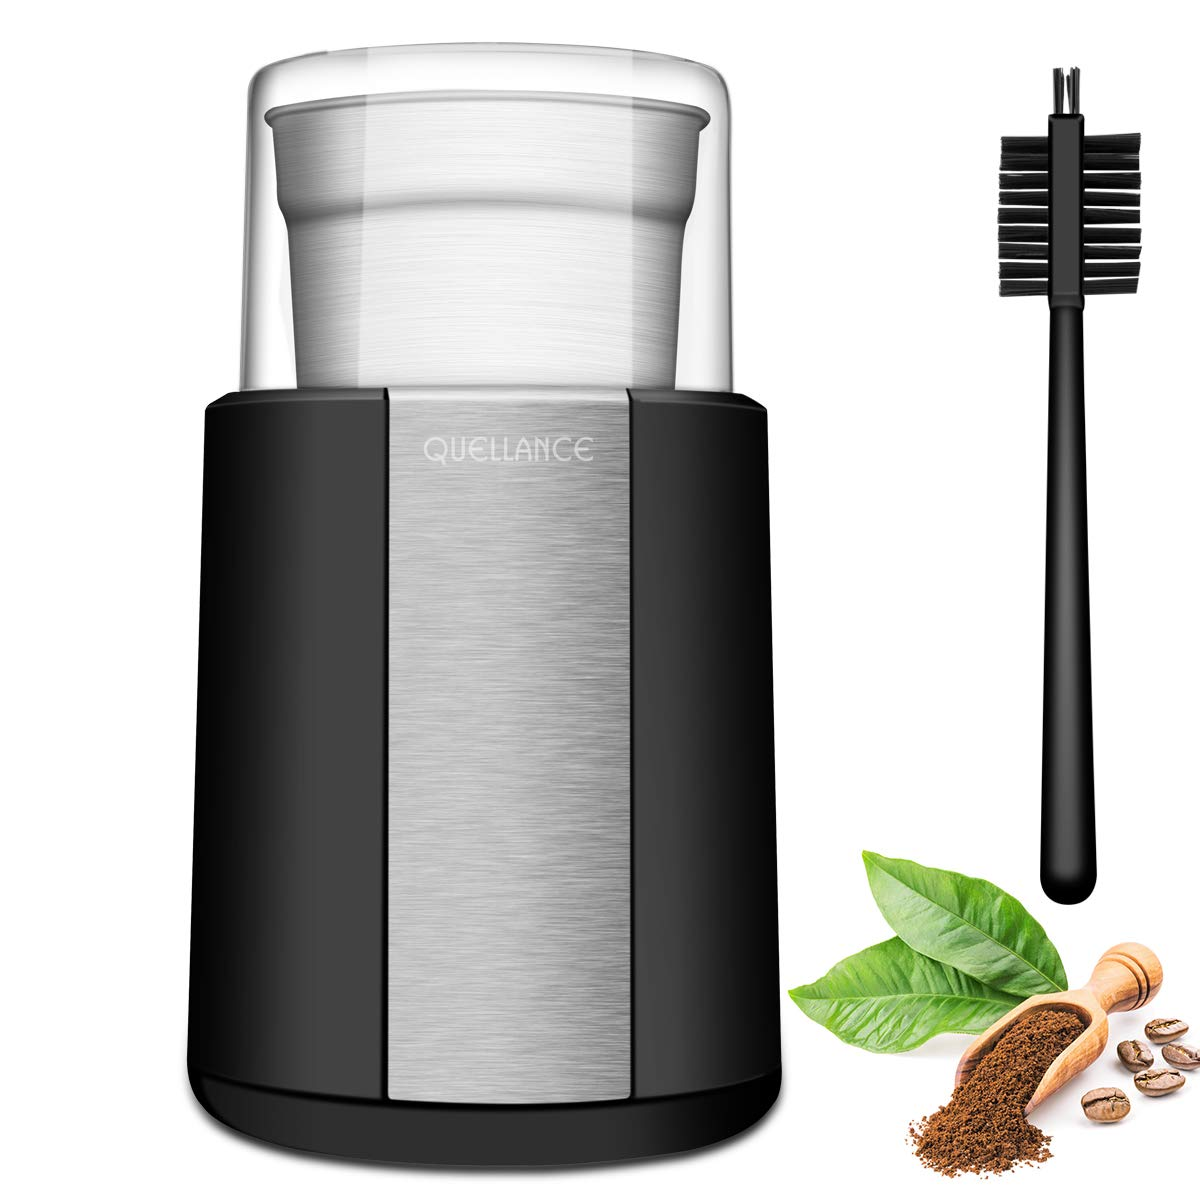 QUELLANCE Electric Coffee Grinder, Stainless Steel Blades Coffee and Spice Grinder with 2.5 Ounce Removable Cup, Powerful 200W Electric Mills for Most Efficient Grinding, Black by QUELLANCE